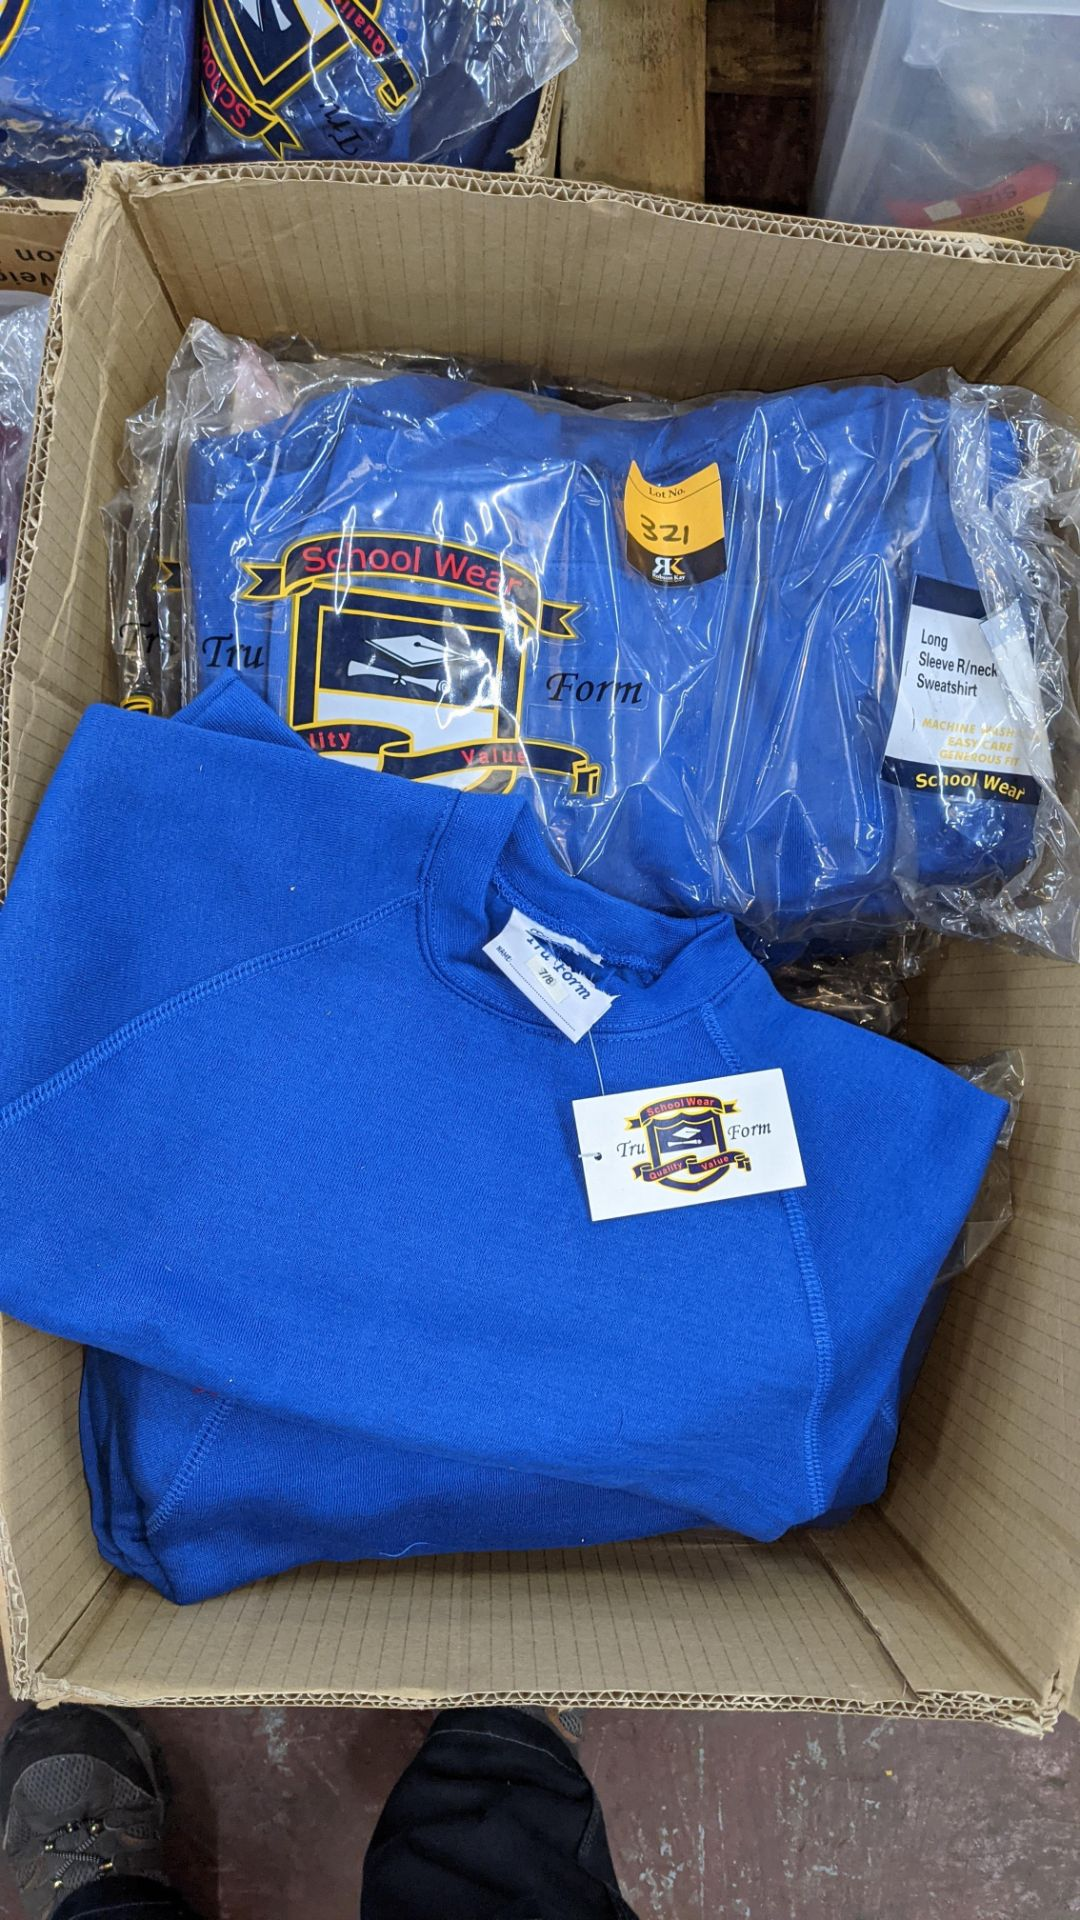 Approx 29 off blue children's sweatshirts & similar - the contents of 1 box - Image 3 of 4